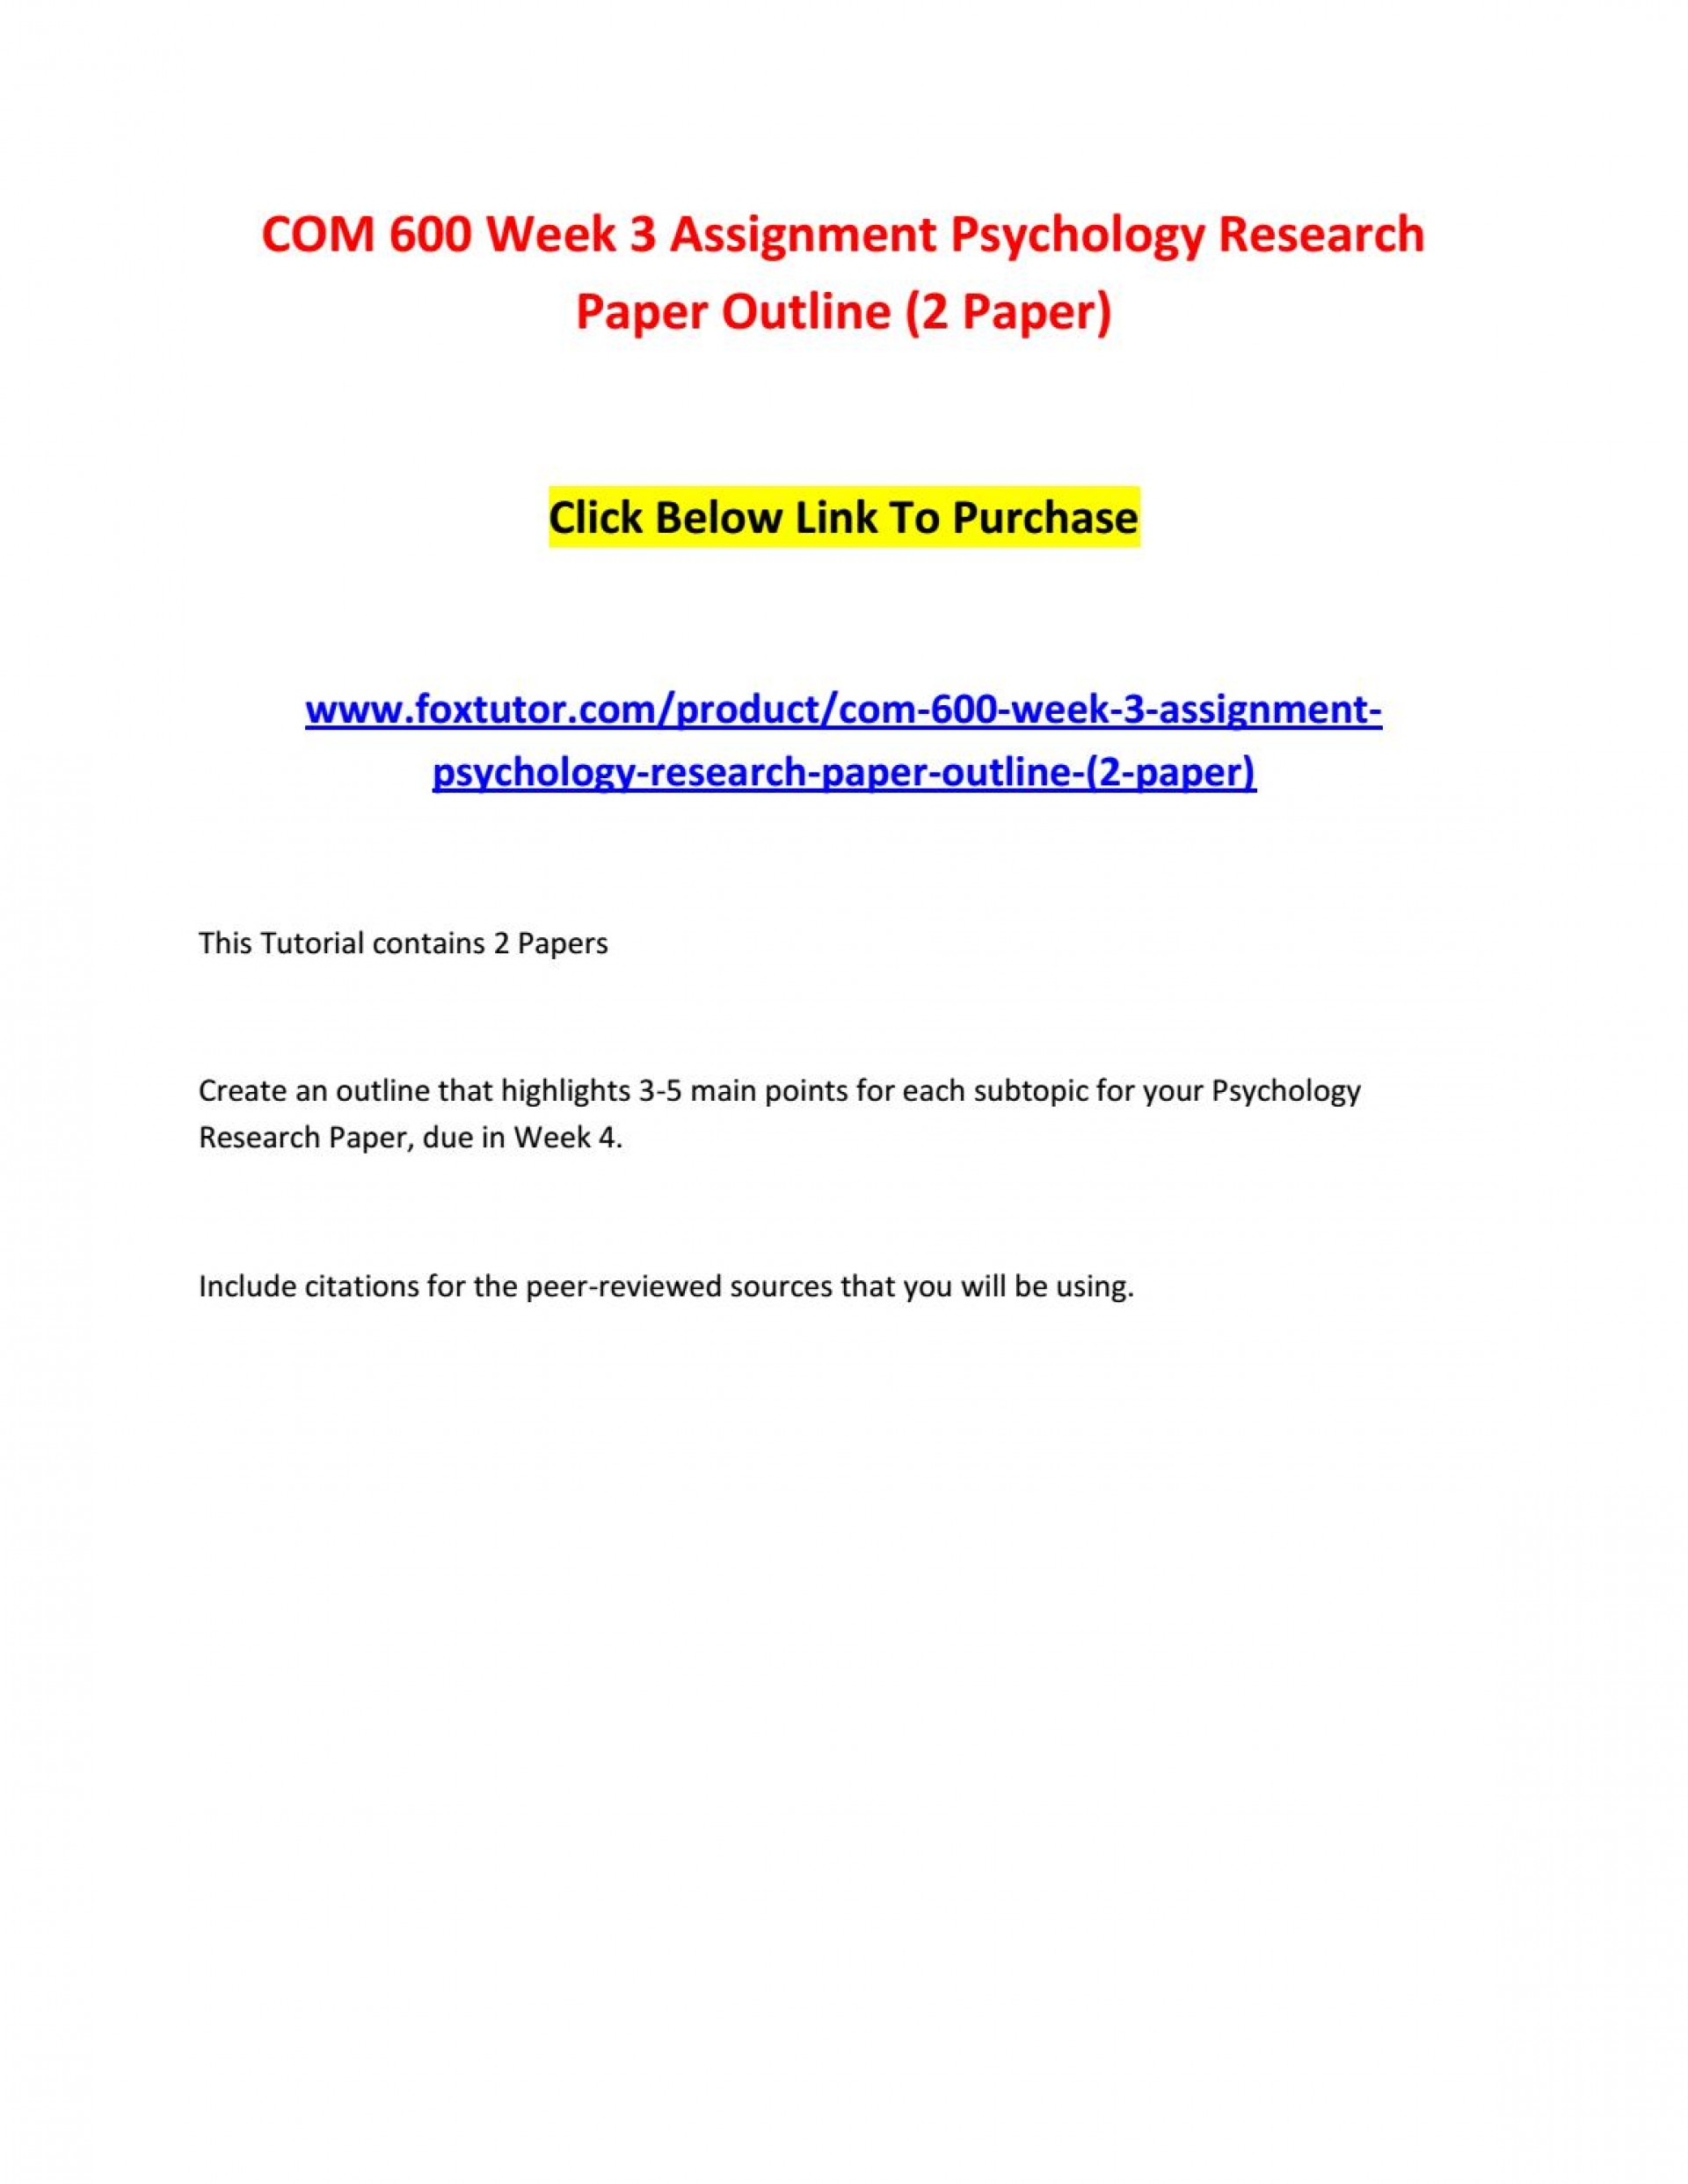 003 Page 1 Psychology Research Paper Outline Com Striking 600 Com/600 1920